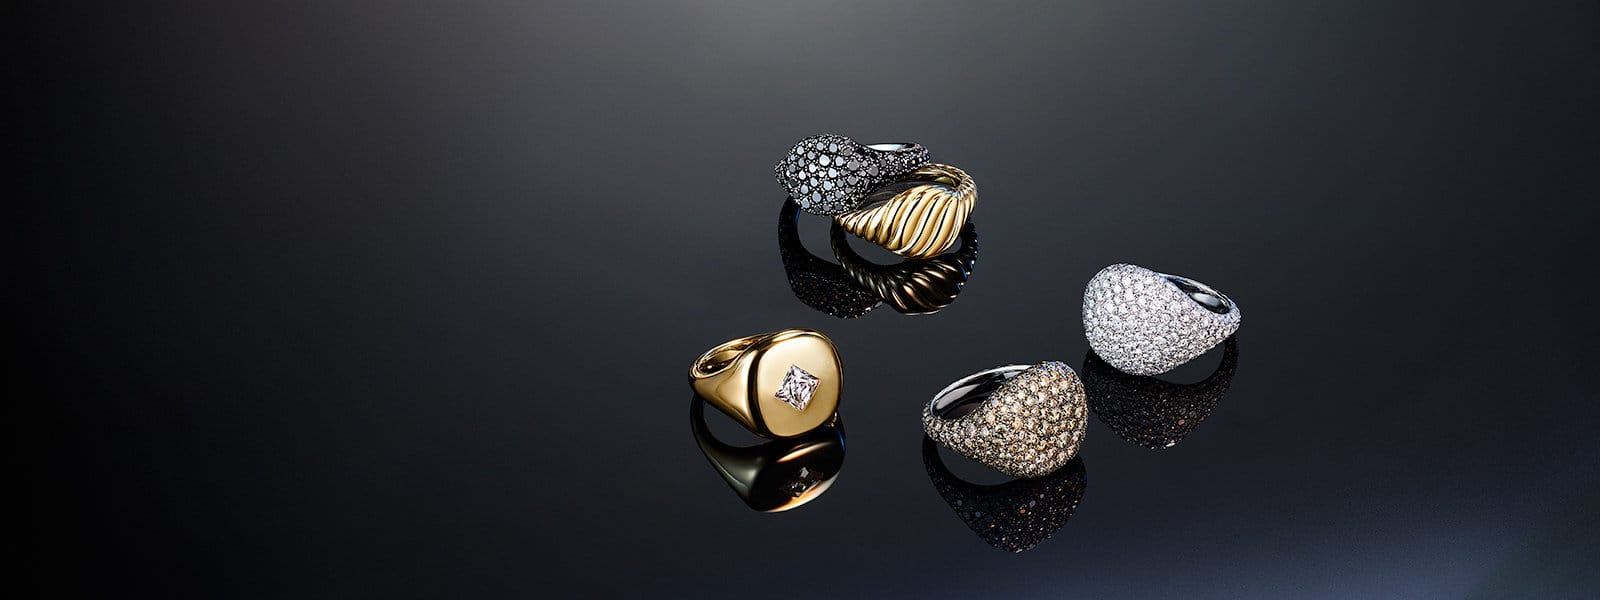 Four David Yurman pinky rings are arranged in a circle atop a dark surface. The jewelry is crafted from 18K white gold with pavé black or white diamonds or from 18K yellow gold with or without pavé cognac diamonds or a princess-cut white diamond